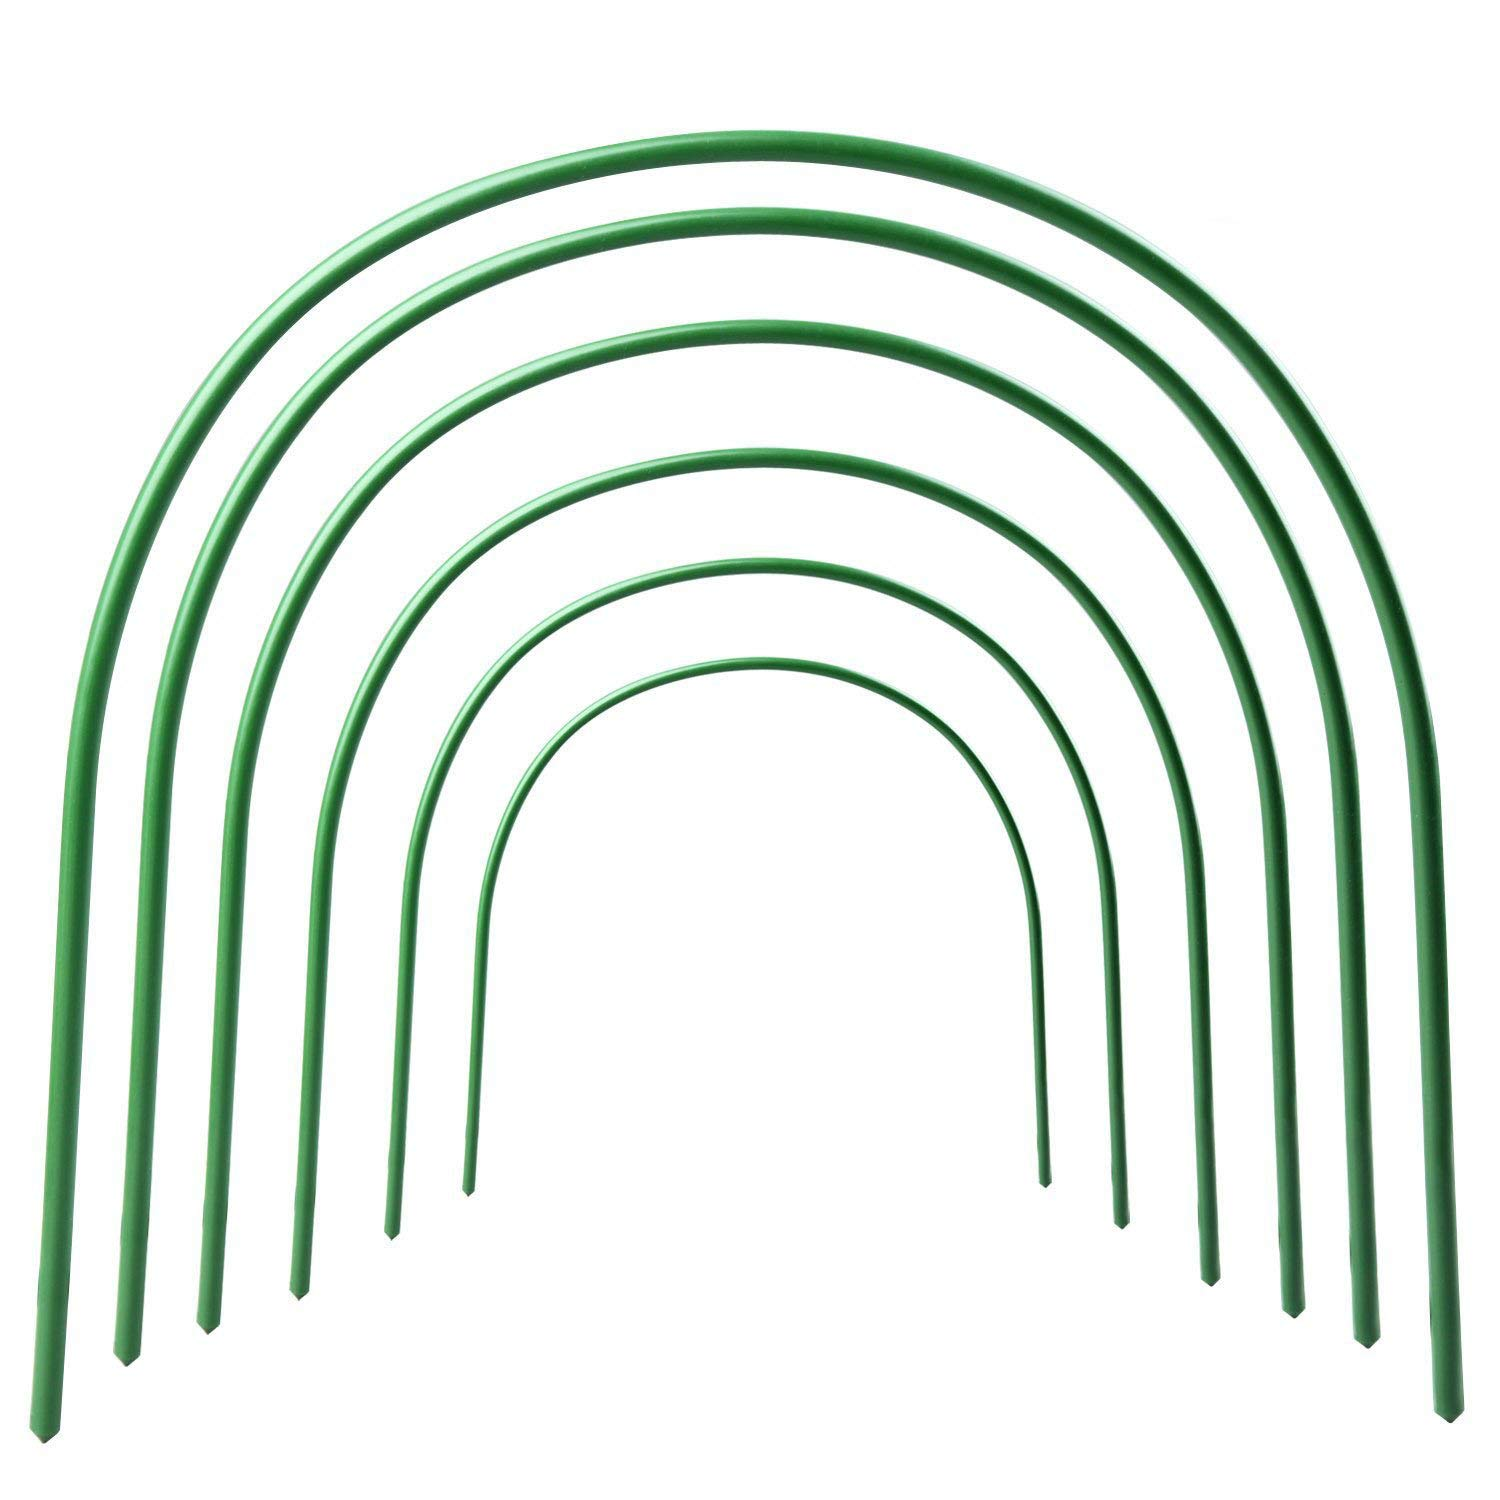 6 pcs Garden Tunnel Cloche,PE Grow Tunnel, tunnel cloche hoops,Mini Greenhouse, Polytunnel Vegetable/Fruit, Adjustable length cloche tunnel for greenhouse accessories Firlar